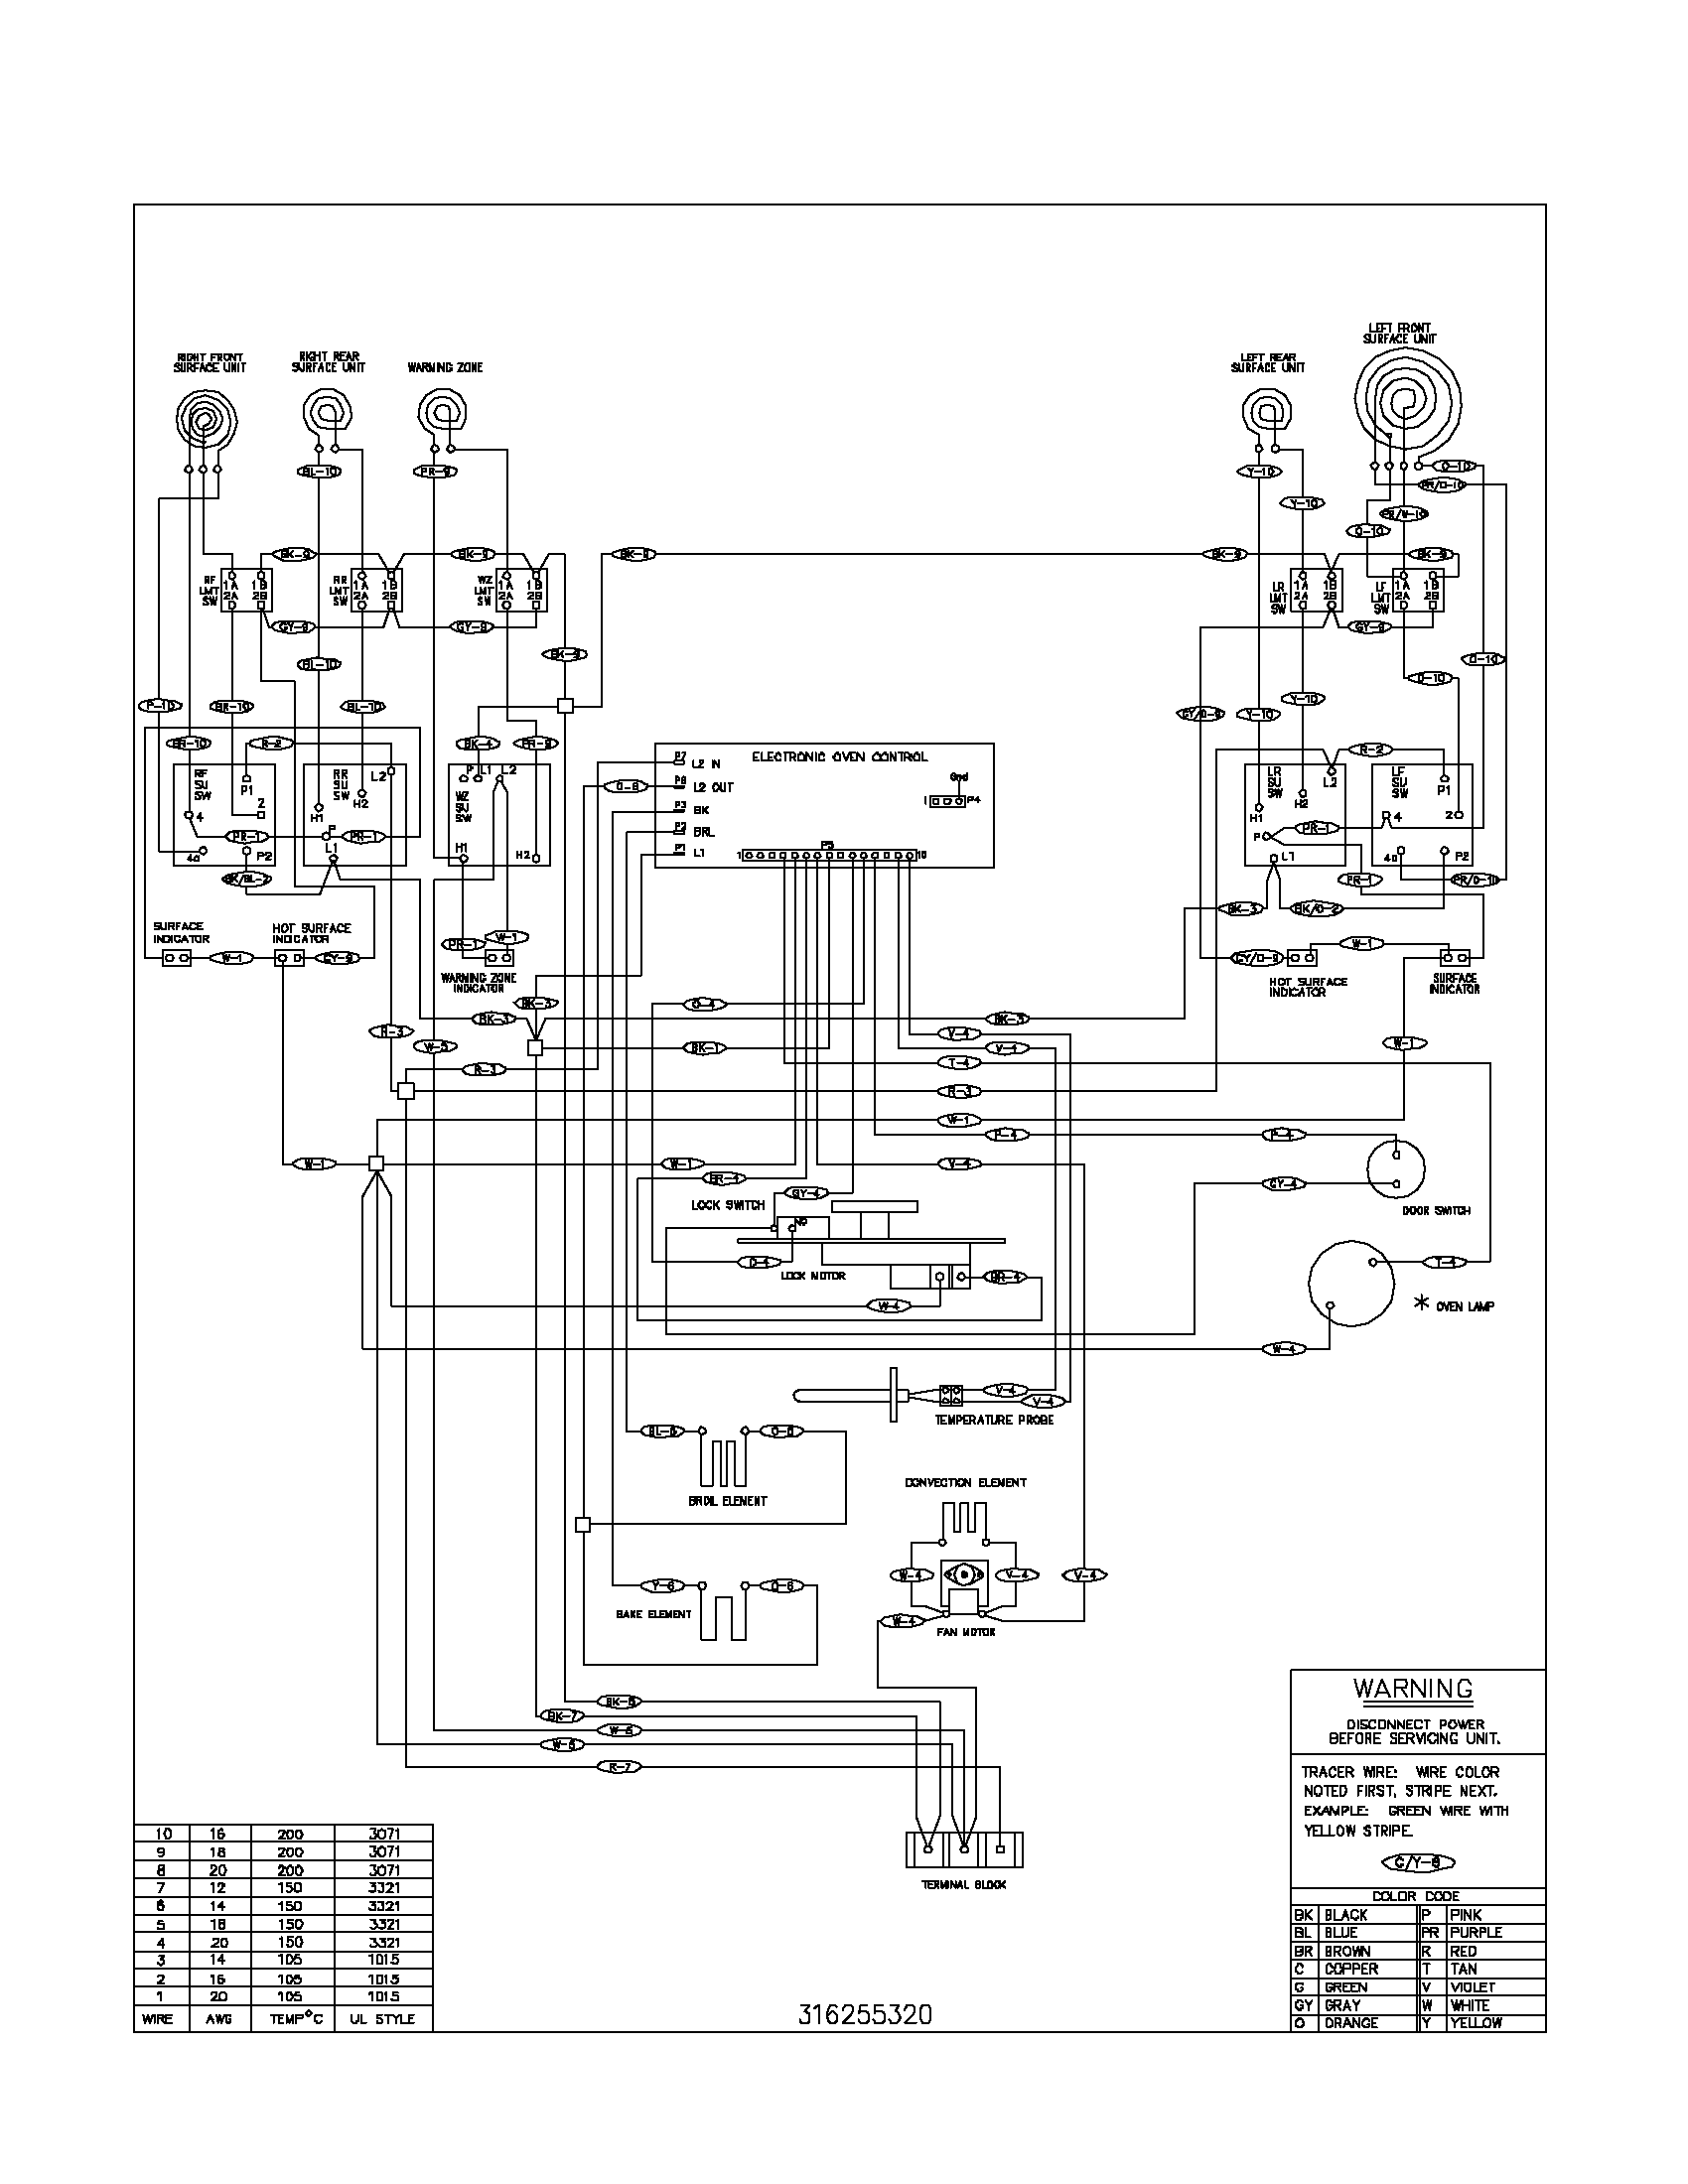 wiring diagram parts ge monogram oven wiring diagram on ge download wirning diagrams kitchenaid dishwasher wiring diagram at edmiracle.co